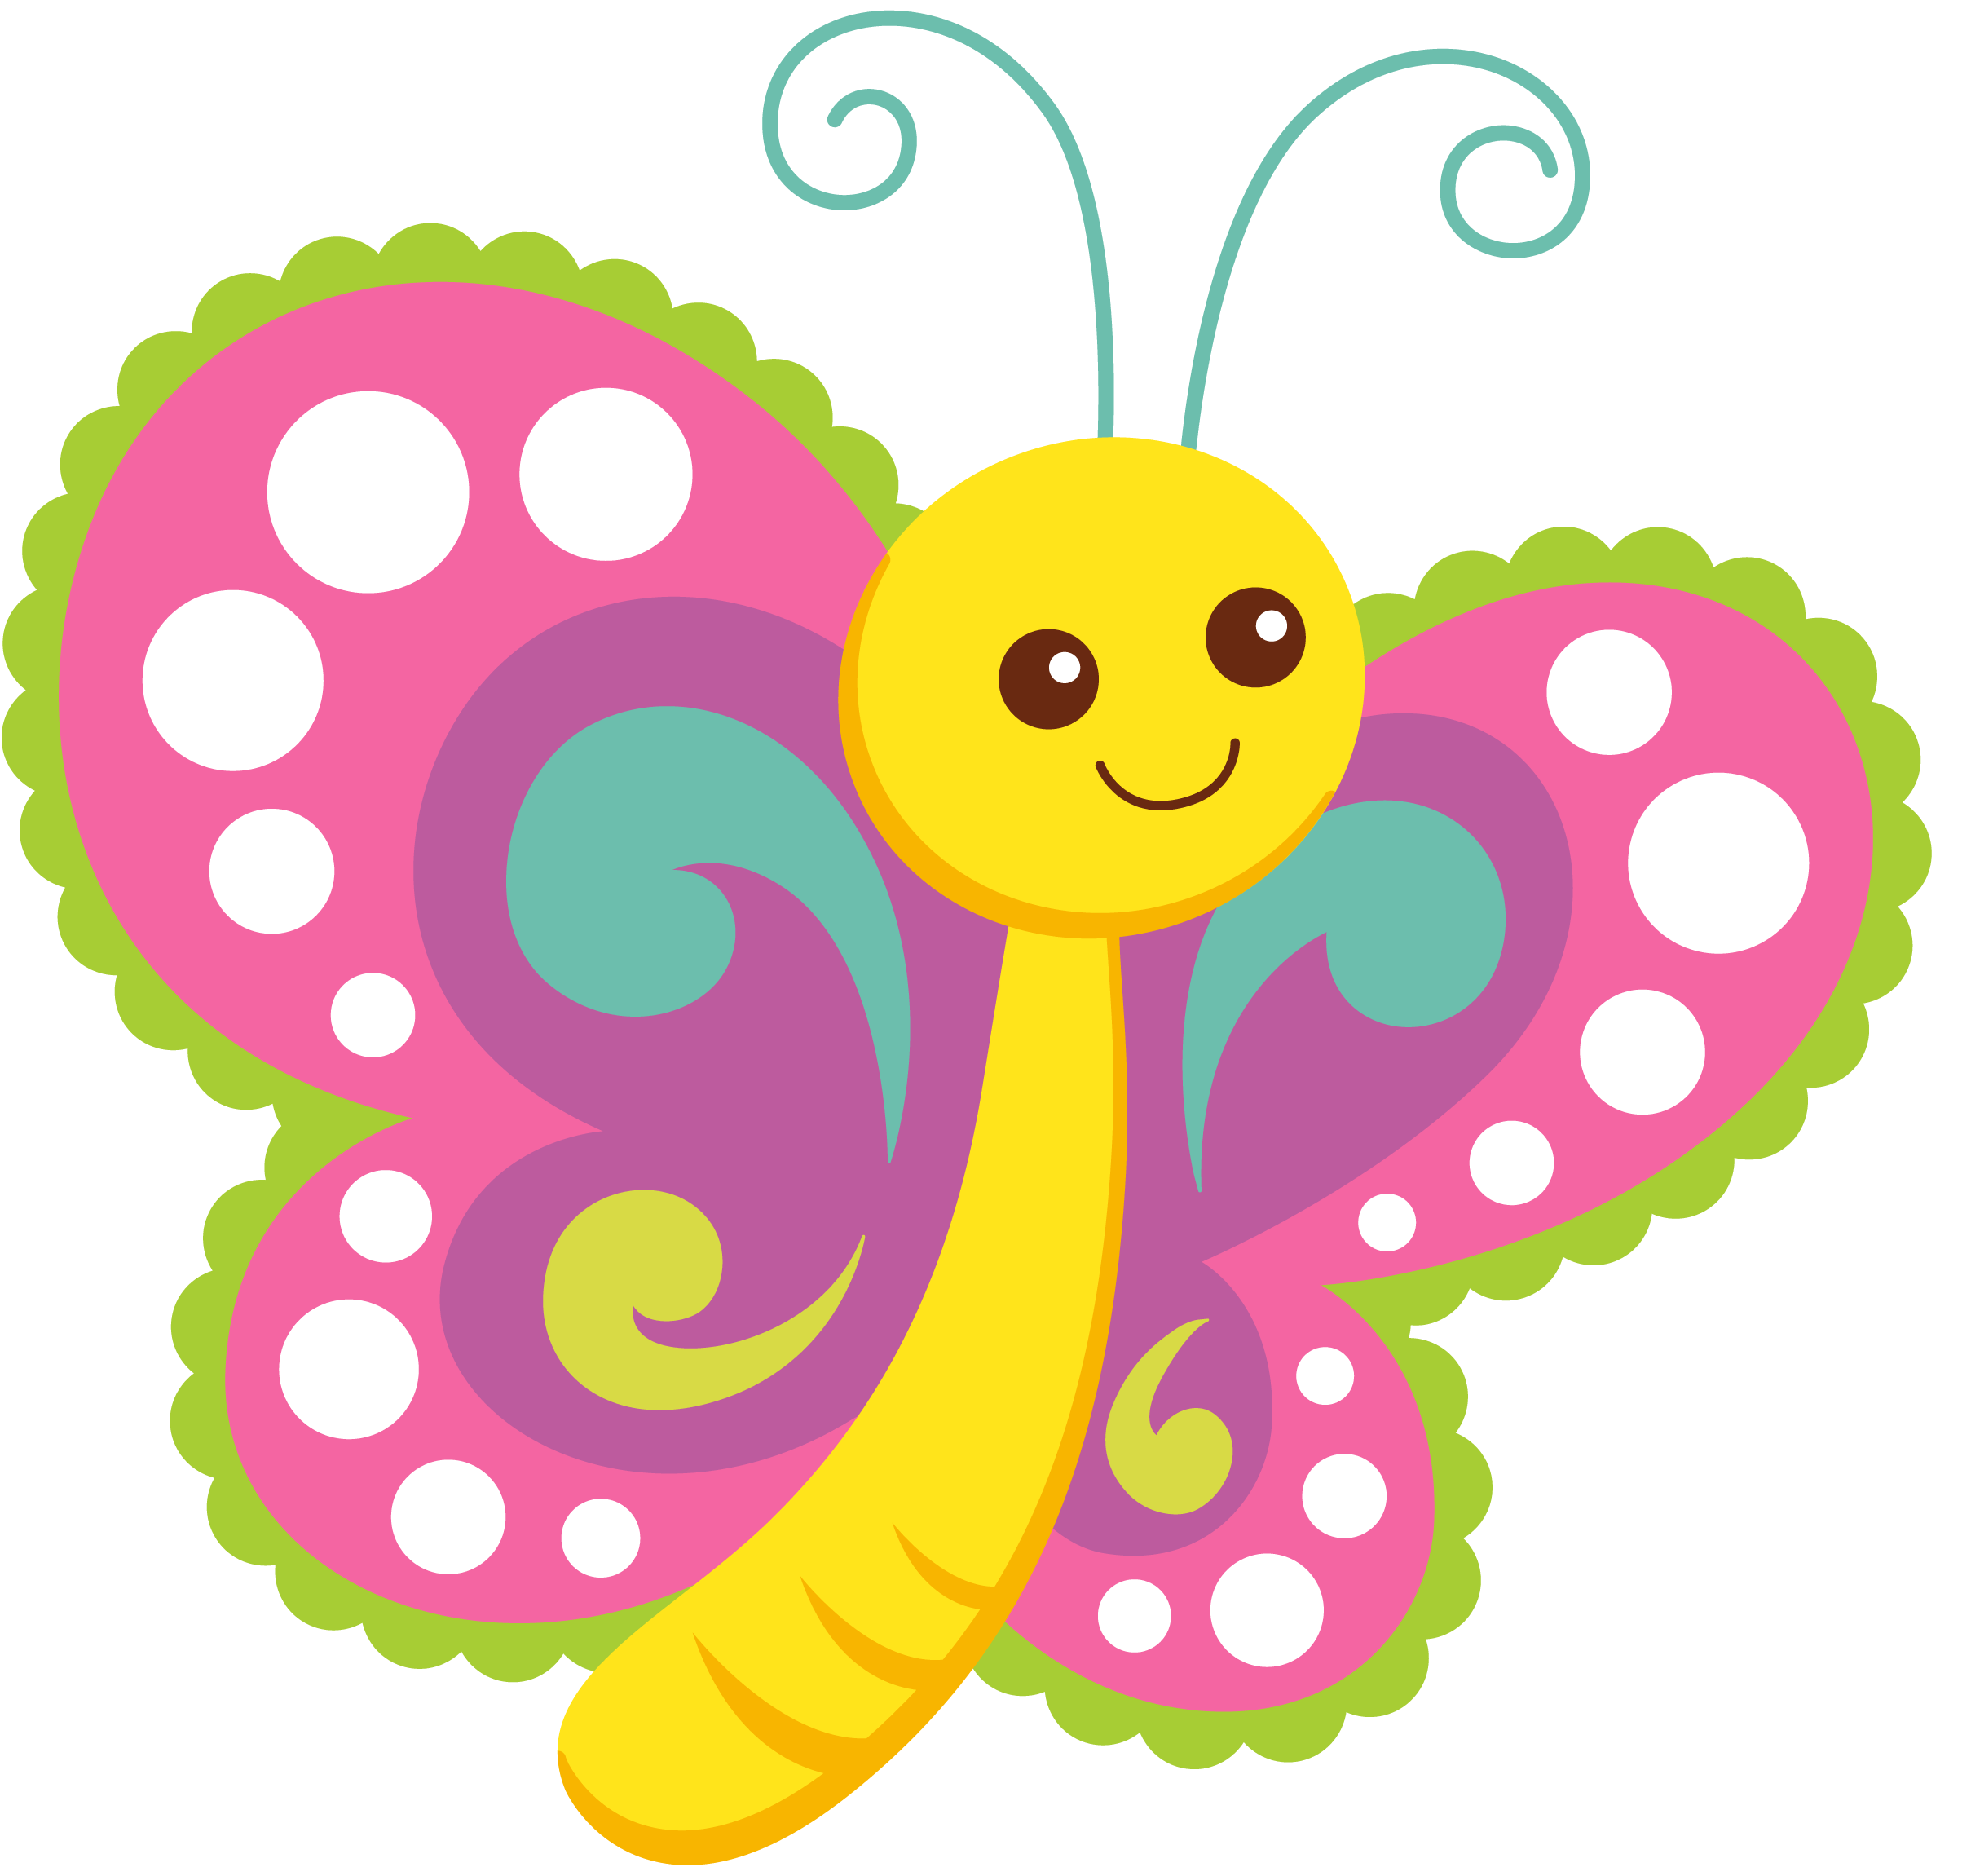 graphic freeuse stock Child clipart butterfly. Photo by daniellemoraesfalcao minus.